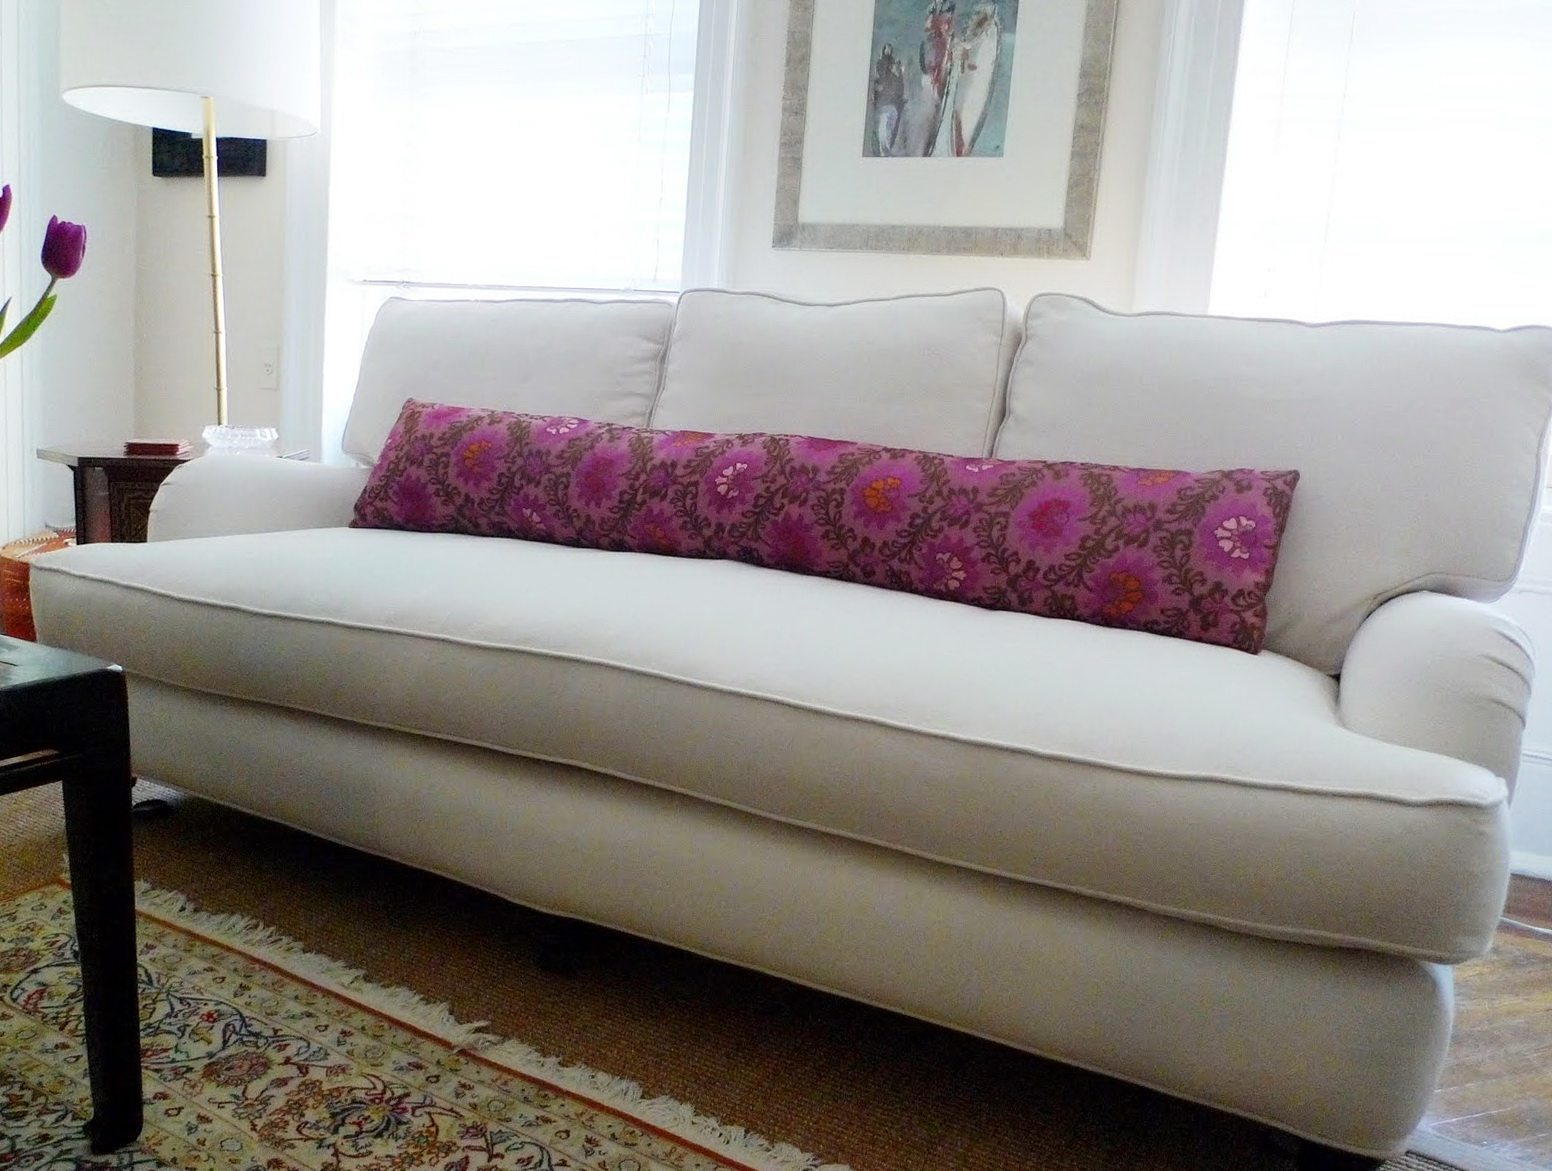 refilling sofa cushions comfortable sectional cushion stuffing foam restuffing couch